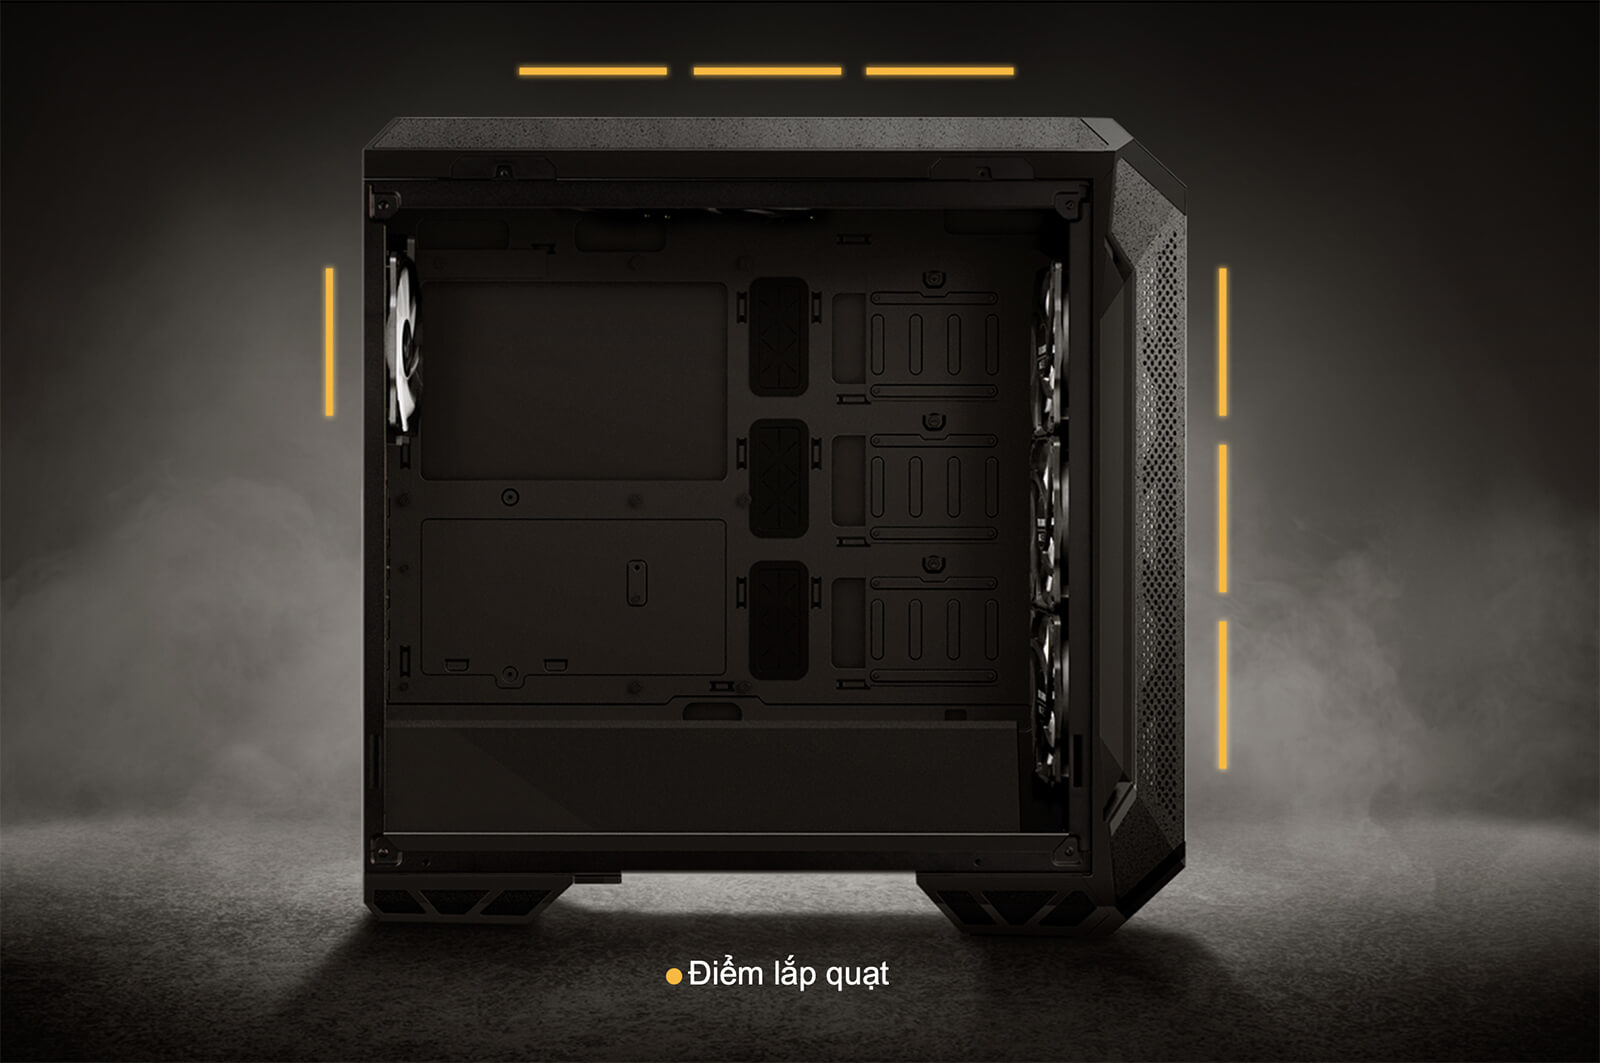 Asus Tuf Gaming Gt501vc Mid Tower Gaming Case Features 03